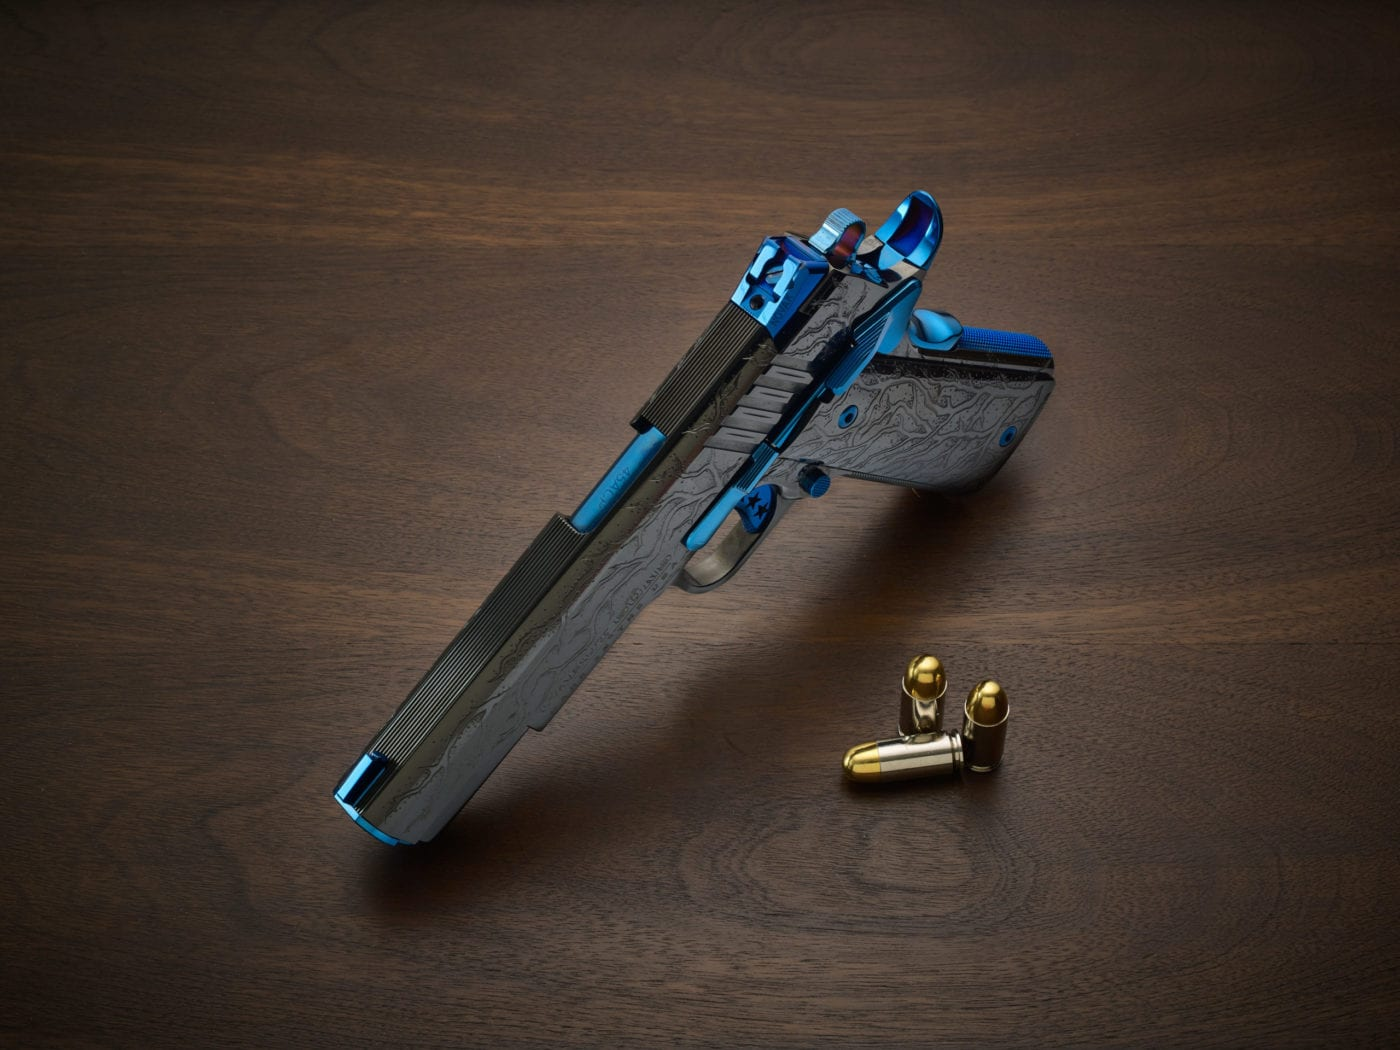 cabot guns blue scorpion 4